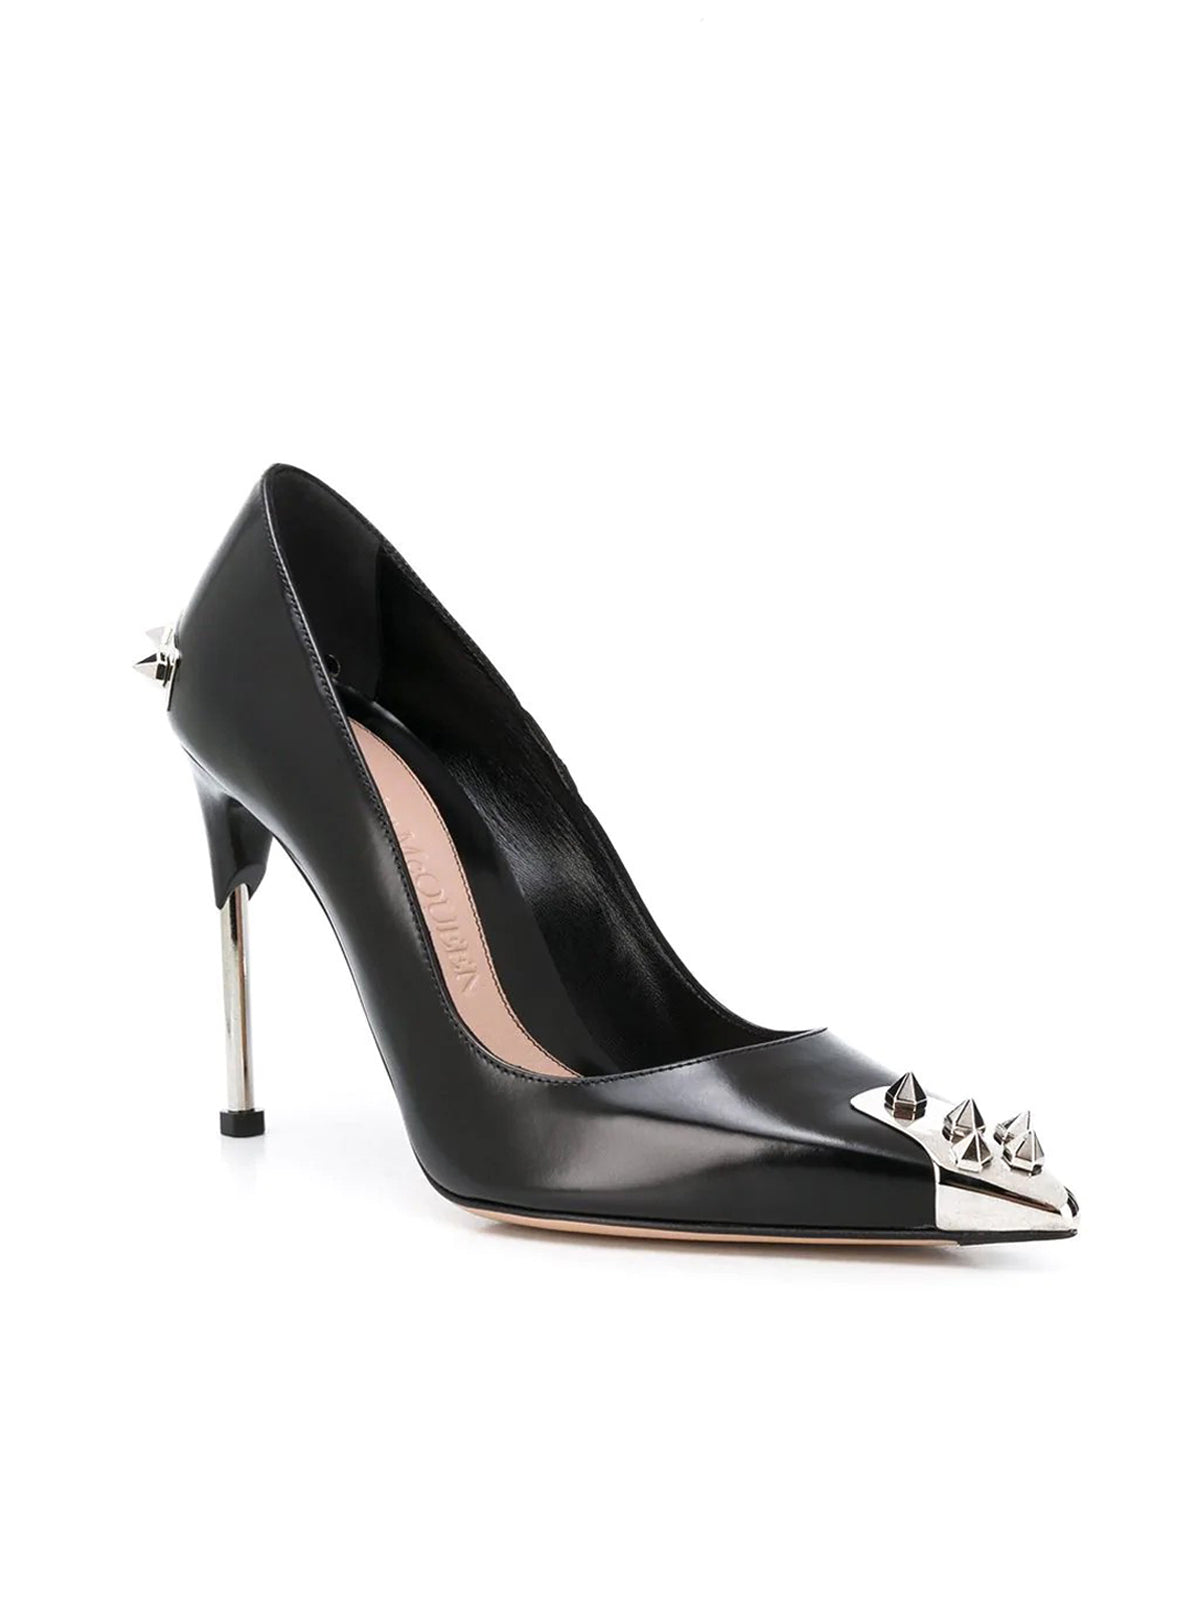 Punk Stud leather pumps